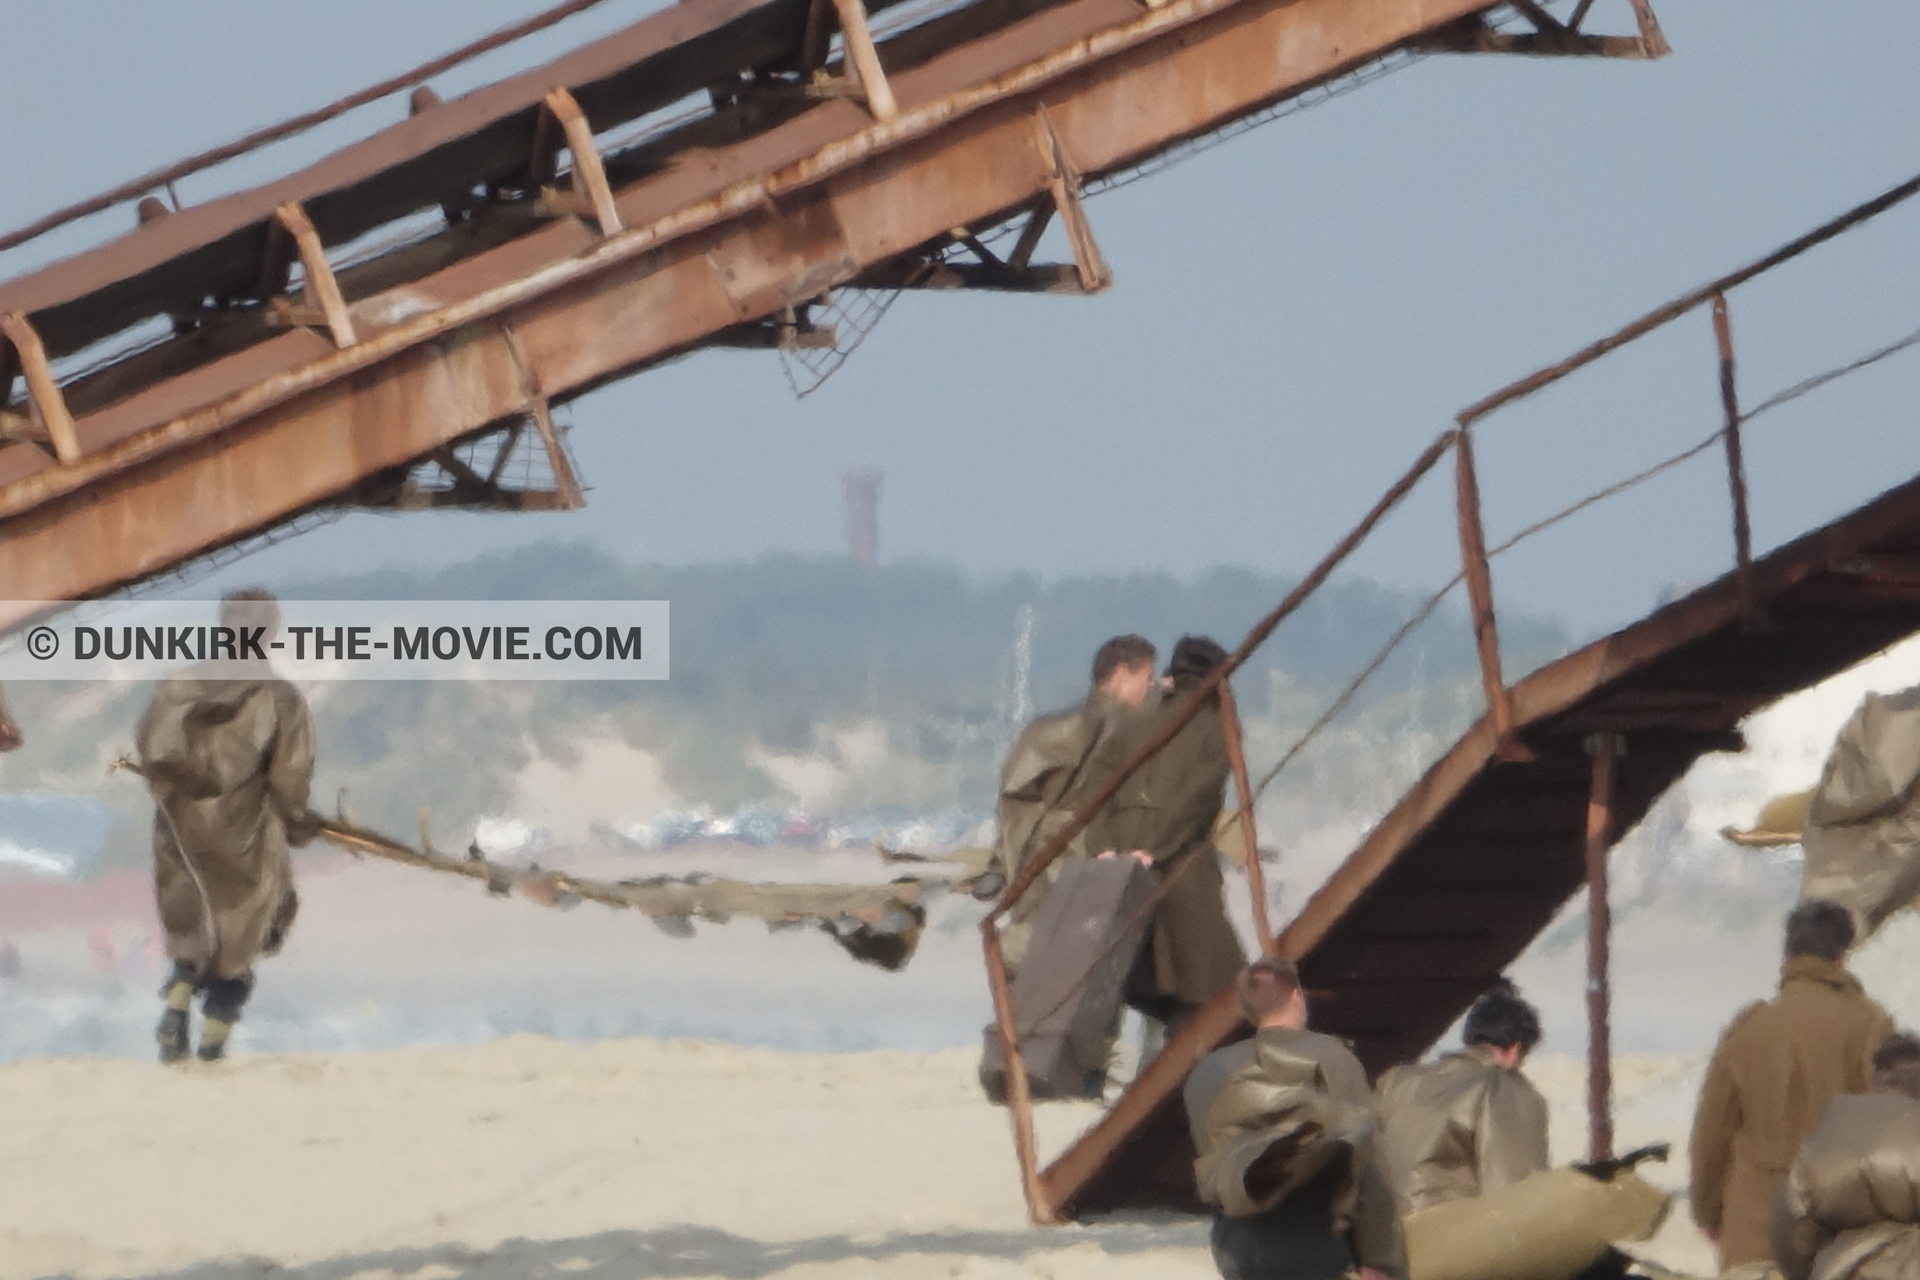 Picture with decor, supernumeraries, beach,  from behind the scene of the Dunkirk movie by Nolan